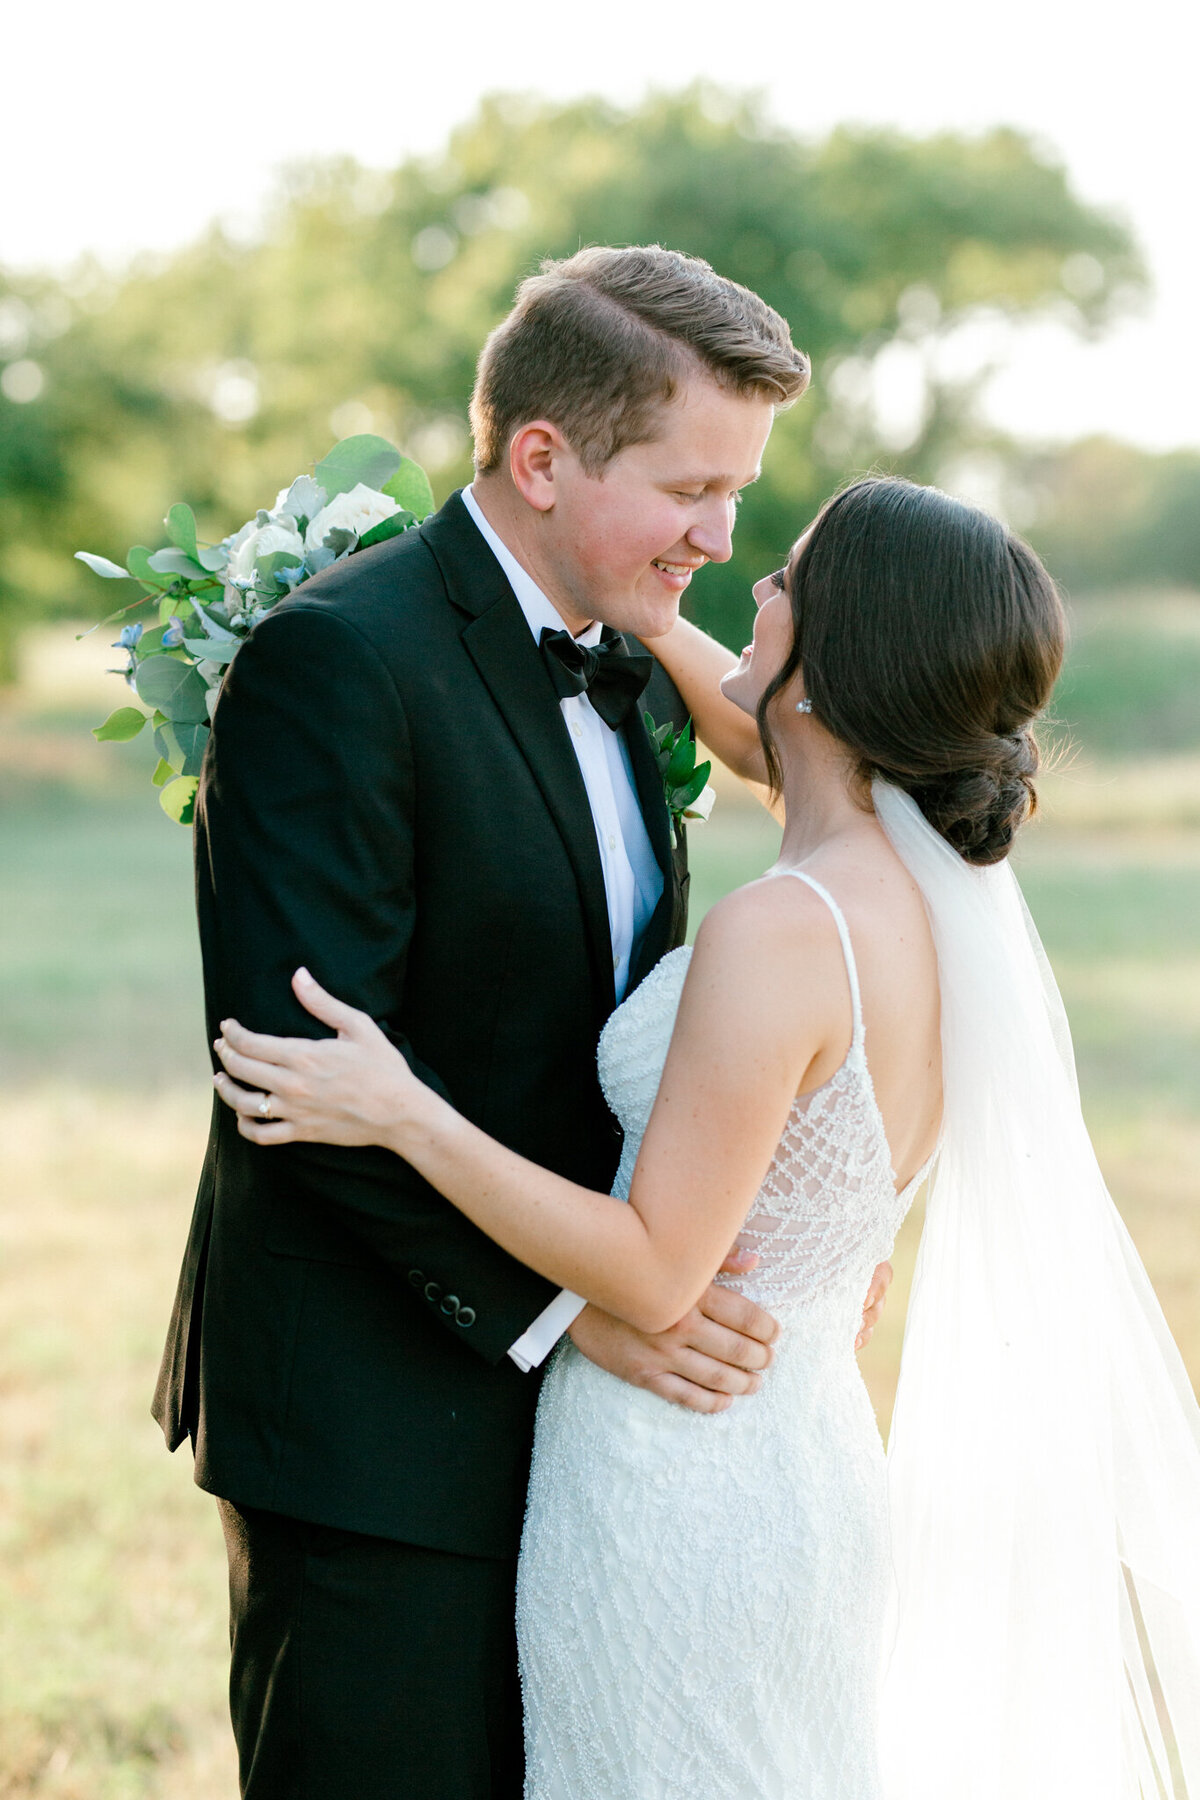 Anna & Billy's Wedding at The Nest at Ruth Farms | Dallas Wedding Photographer | Sami Kathryn Photography-163